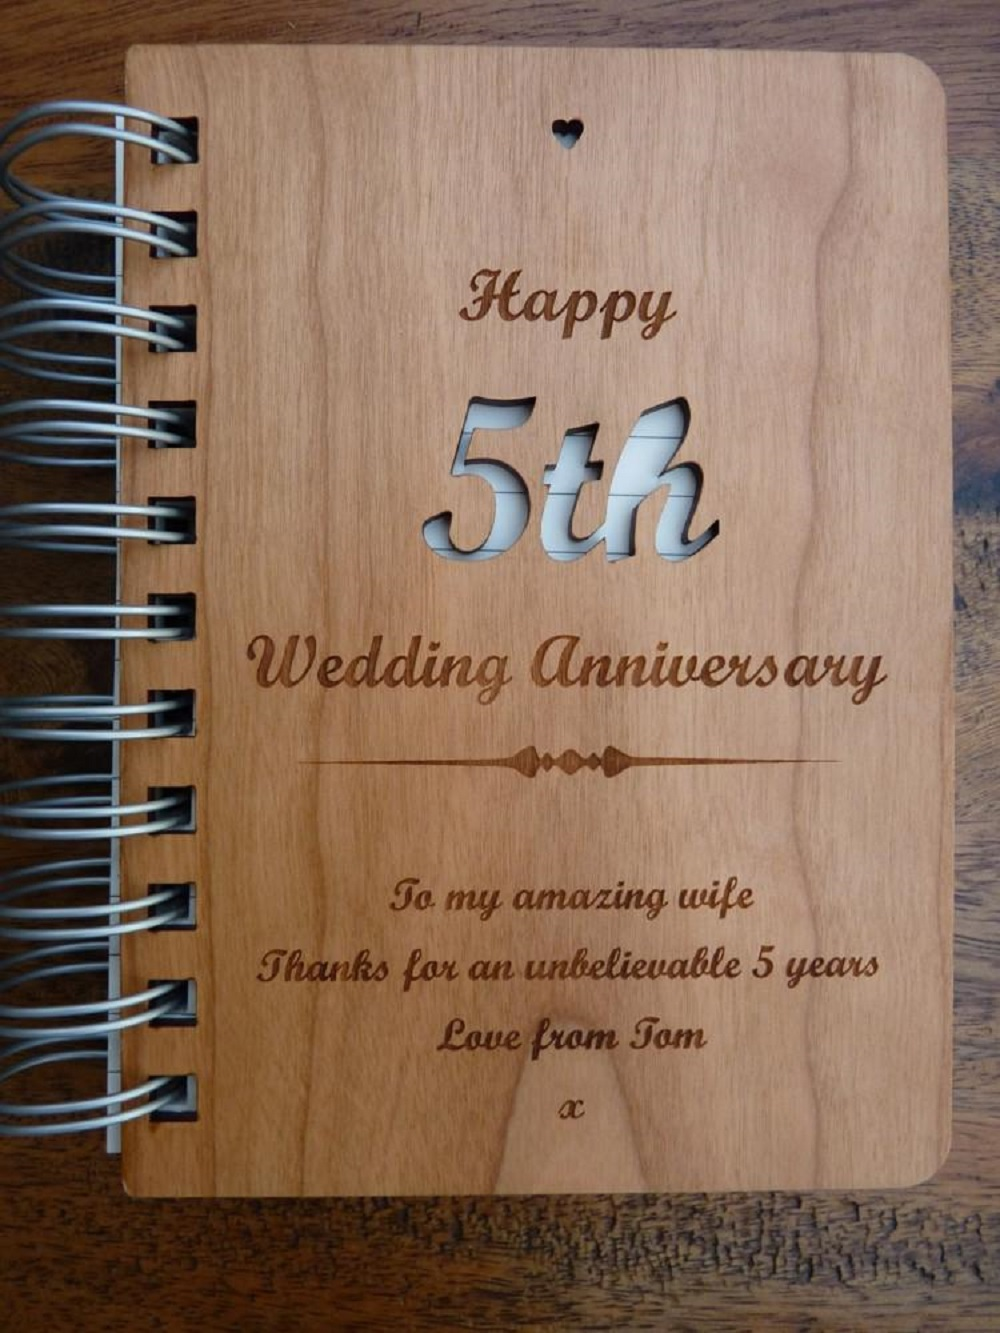 it's a journal with wooden beautifully crafted cover for a fifth wedding anniversary